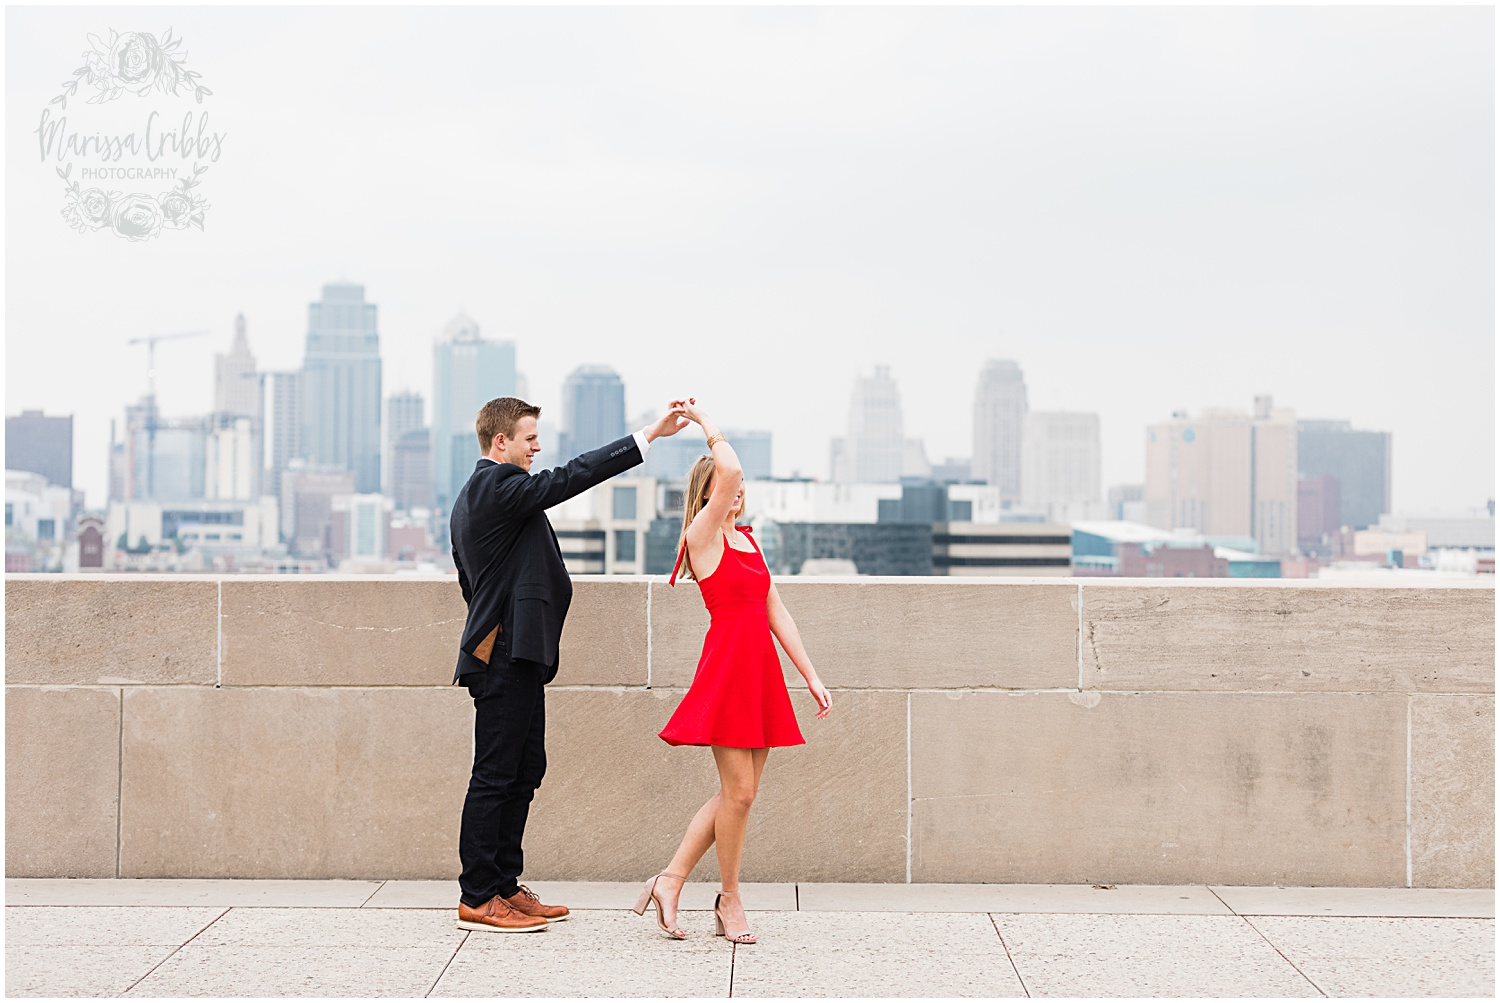 MADDY & KYLE ENGAGEMENT | MARISSA CRIBBS PHOTOGRAPHY_7618.jpg